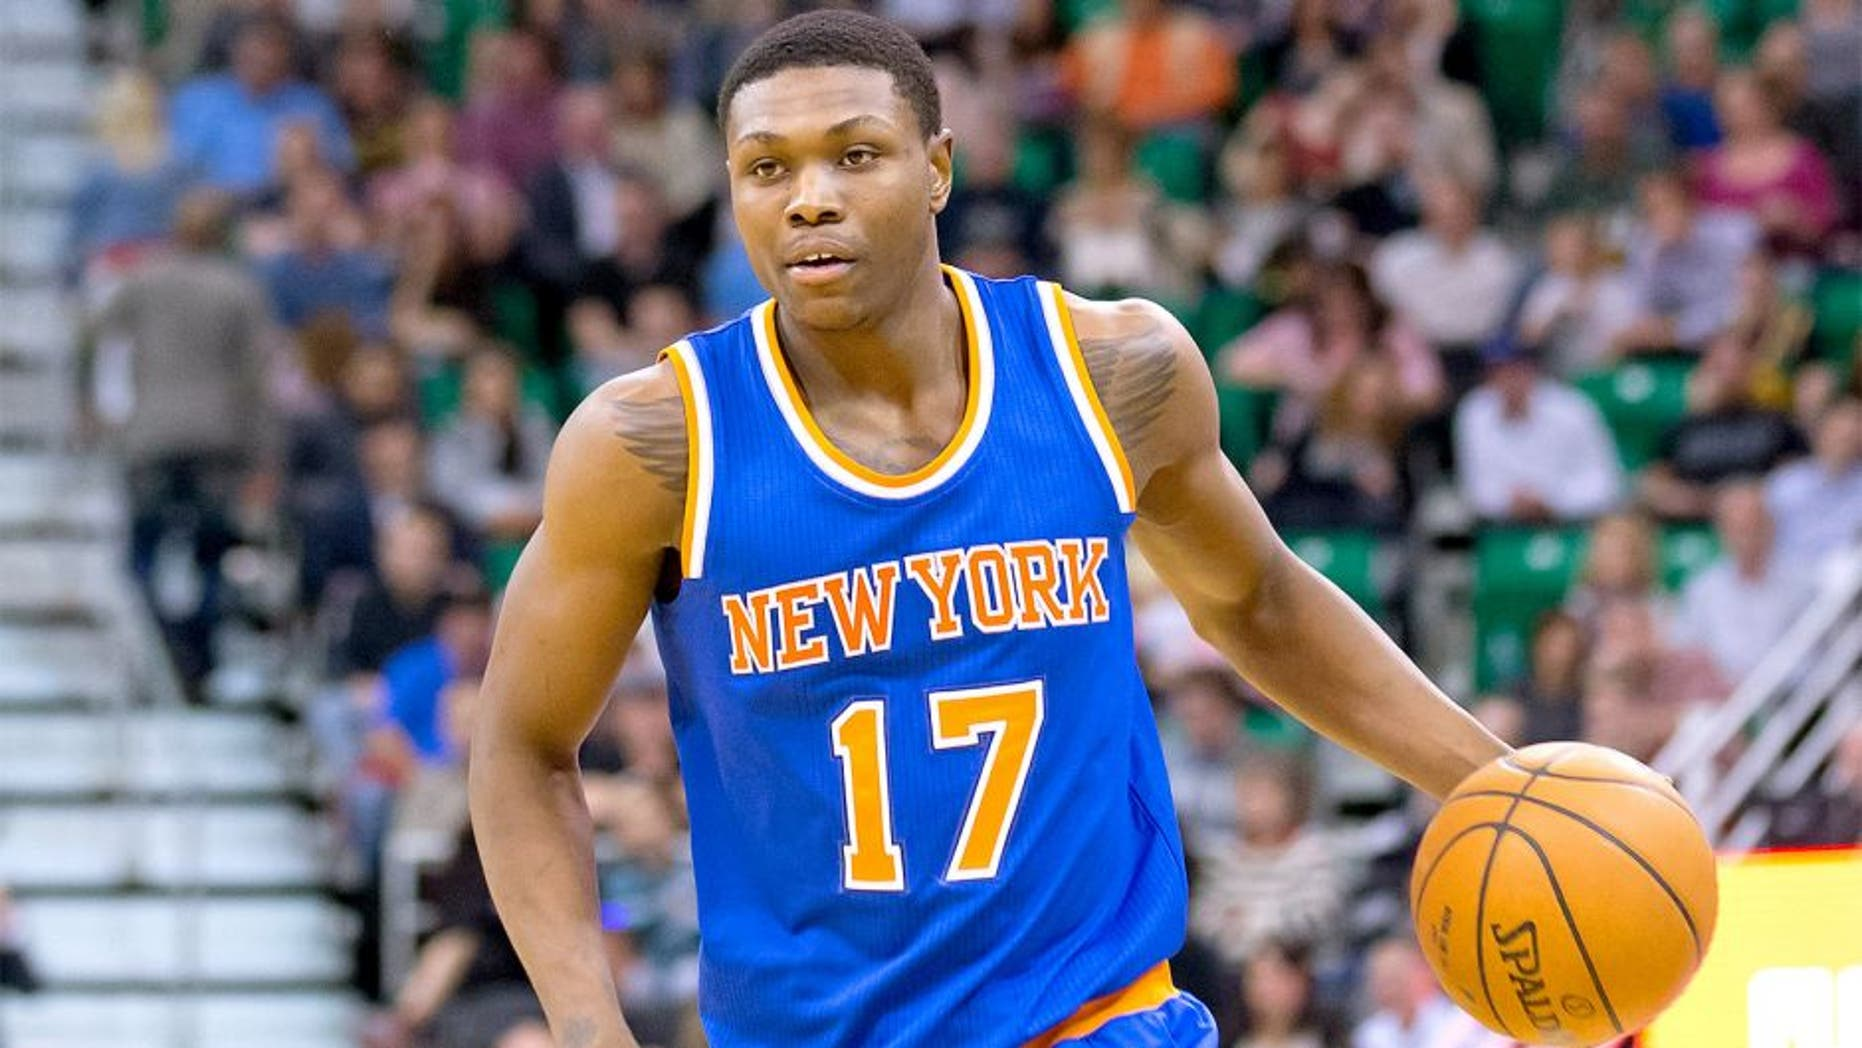 Mar 10, 2015; Salt Lake City, UT, USA; New York Knicks forward Cleanthony Early (17) dribbles the ball during the first half against the Utah Jazz at EnergySolutions Arena. The Jazz won 87-82. Mandatory Credit: Russ Isabella-USA TODAY Sports